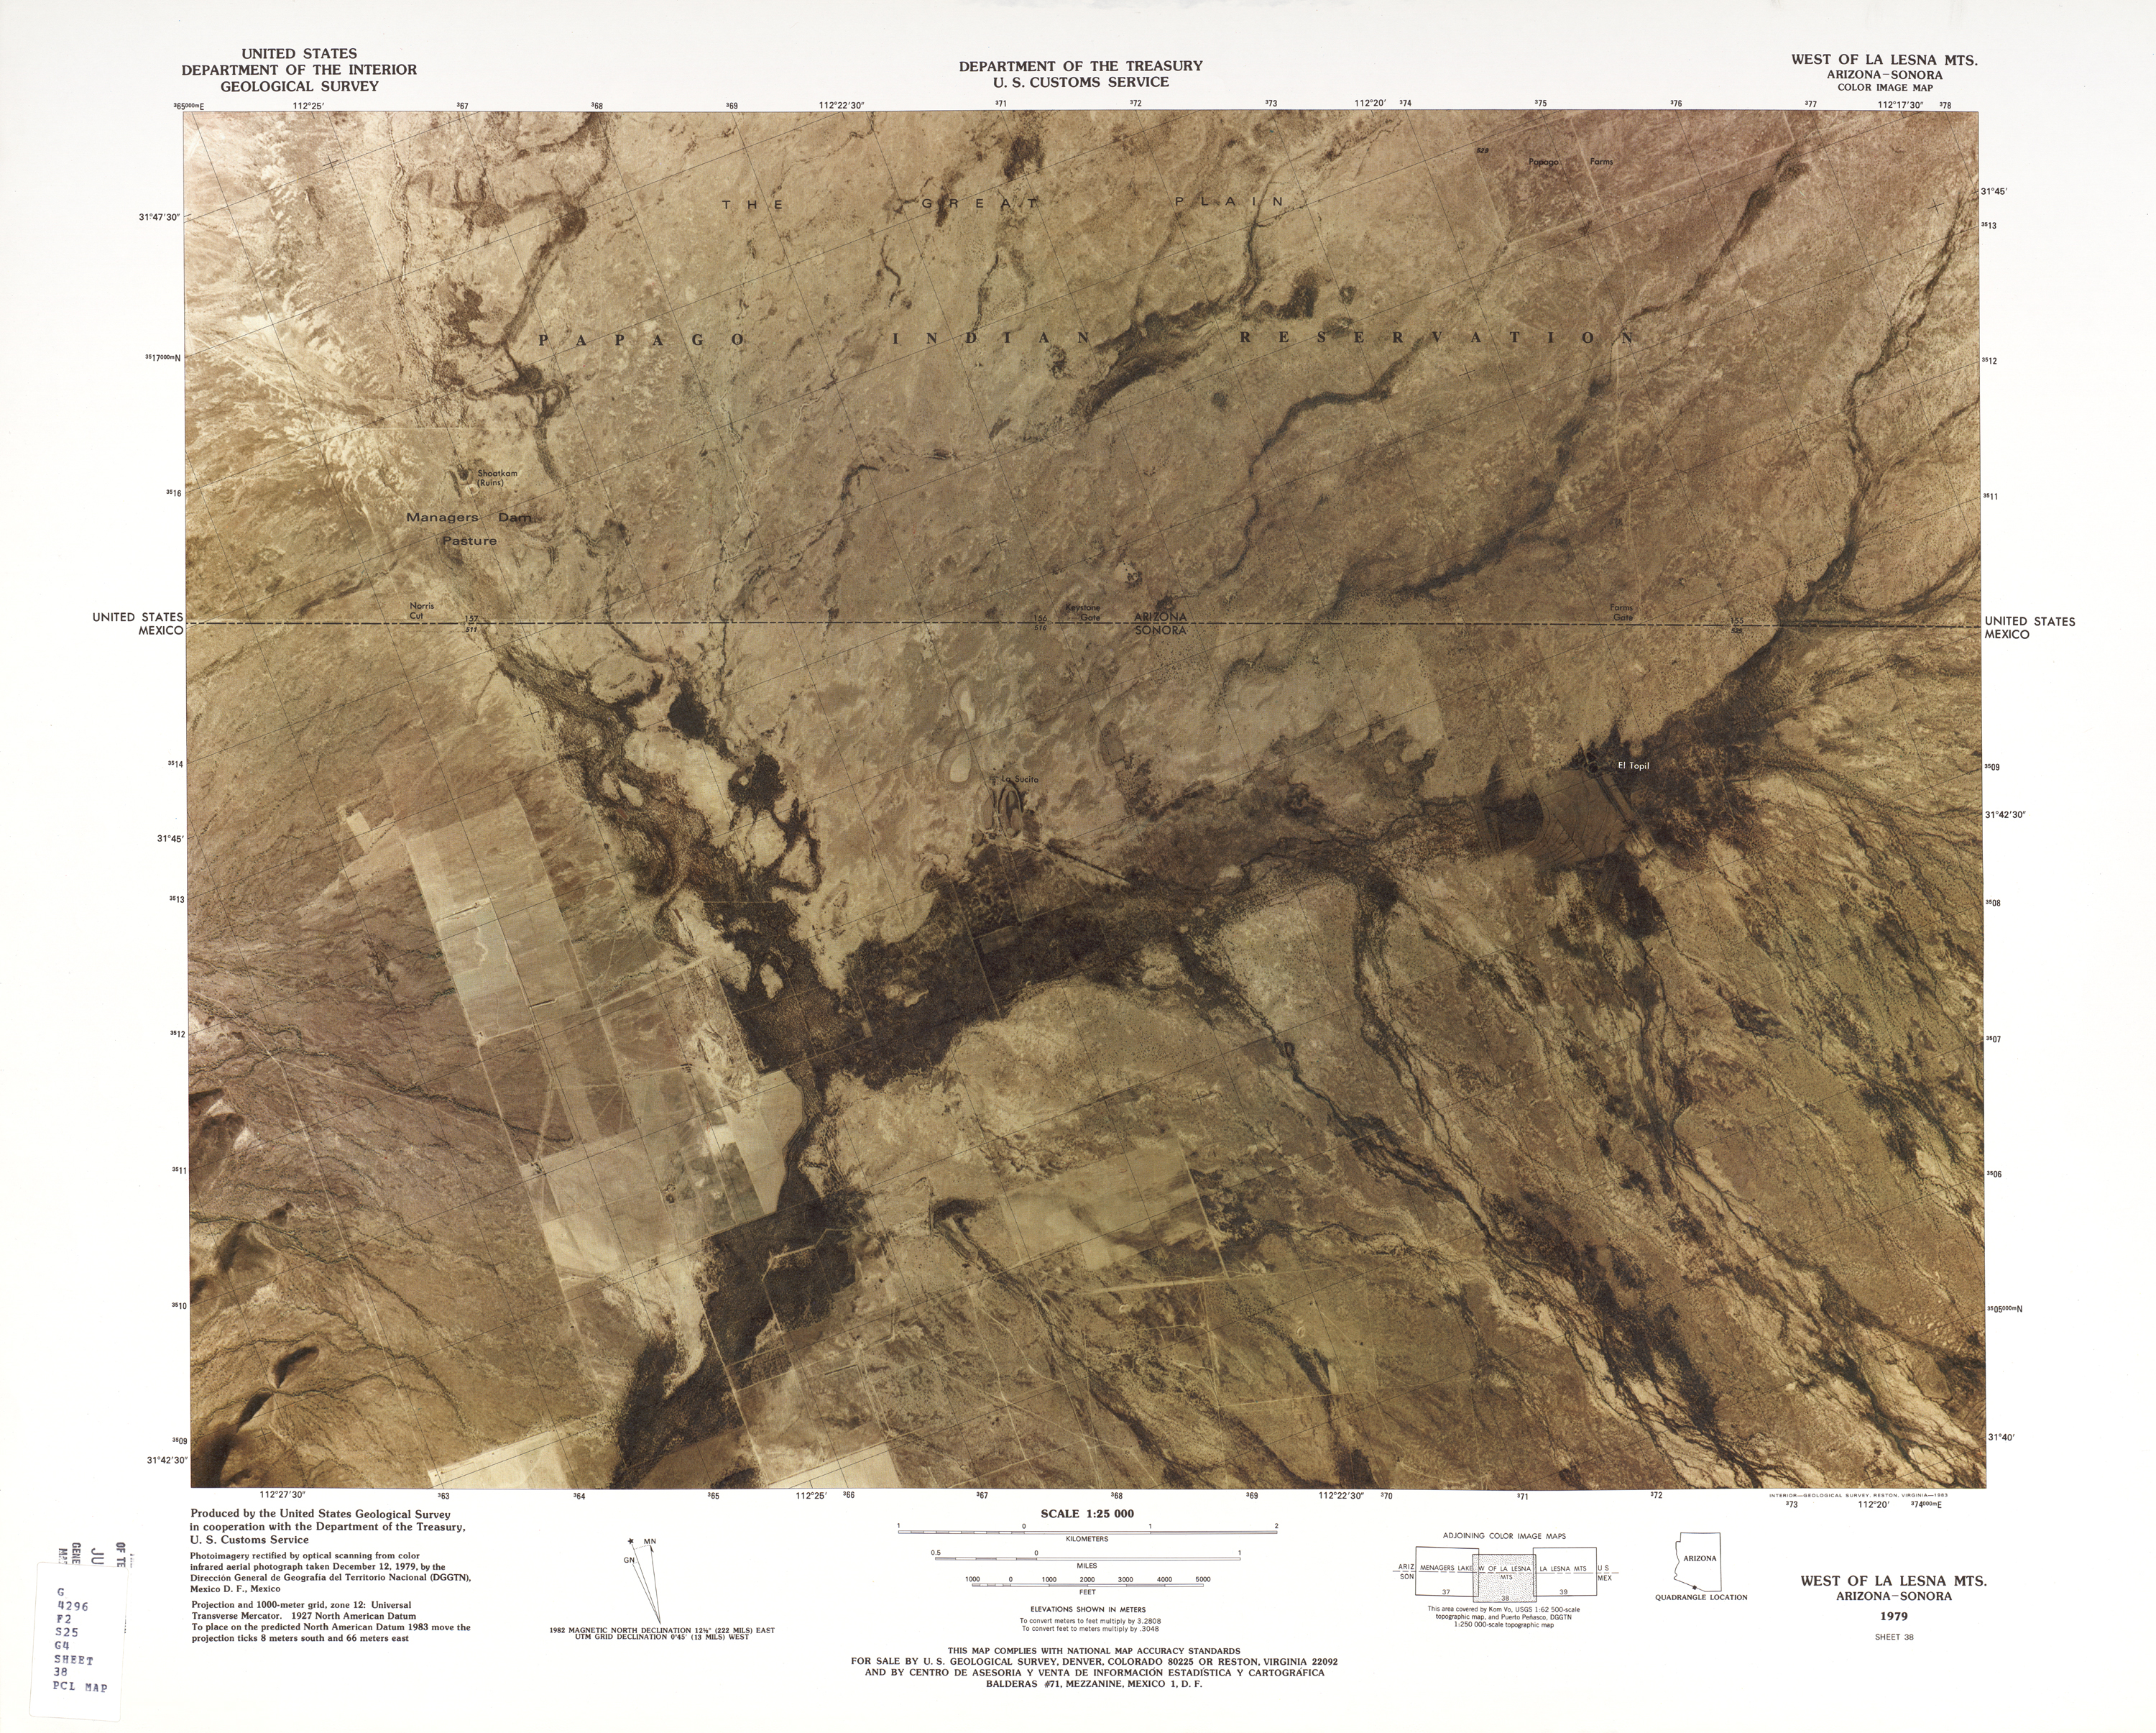 United States-Mexico Border Map, West of La Lesna Mts.